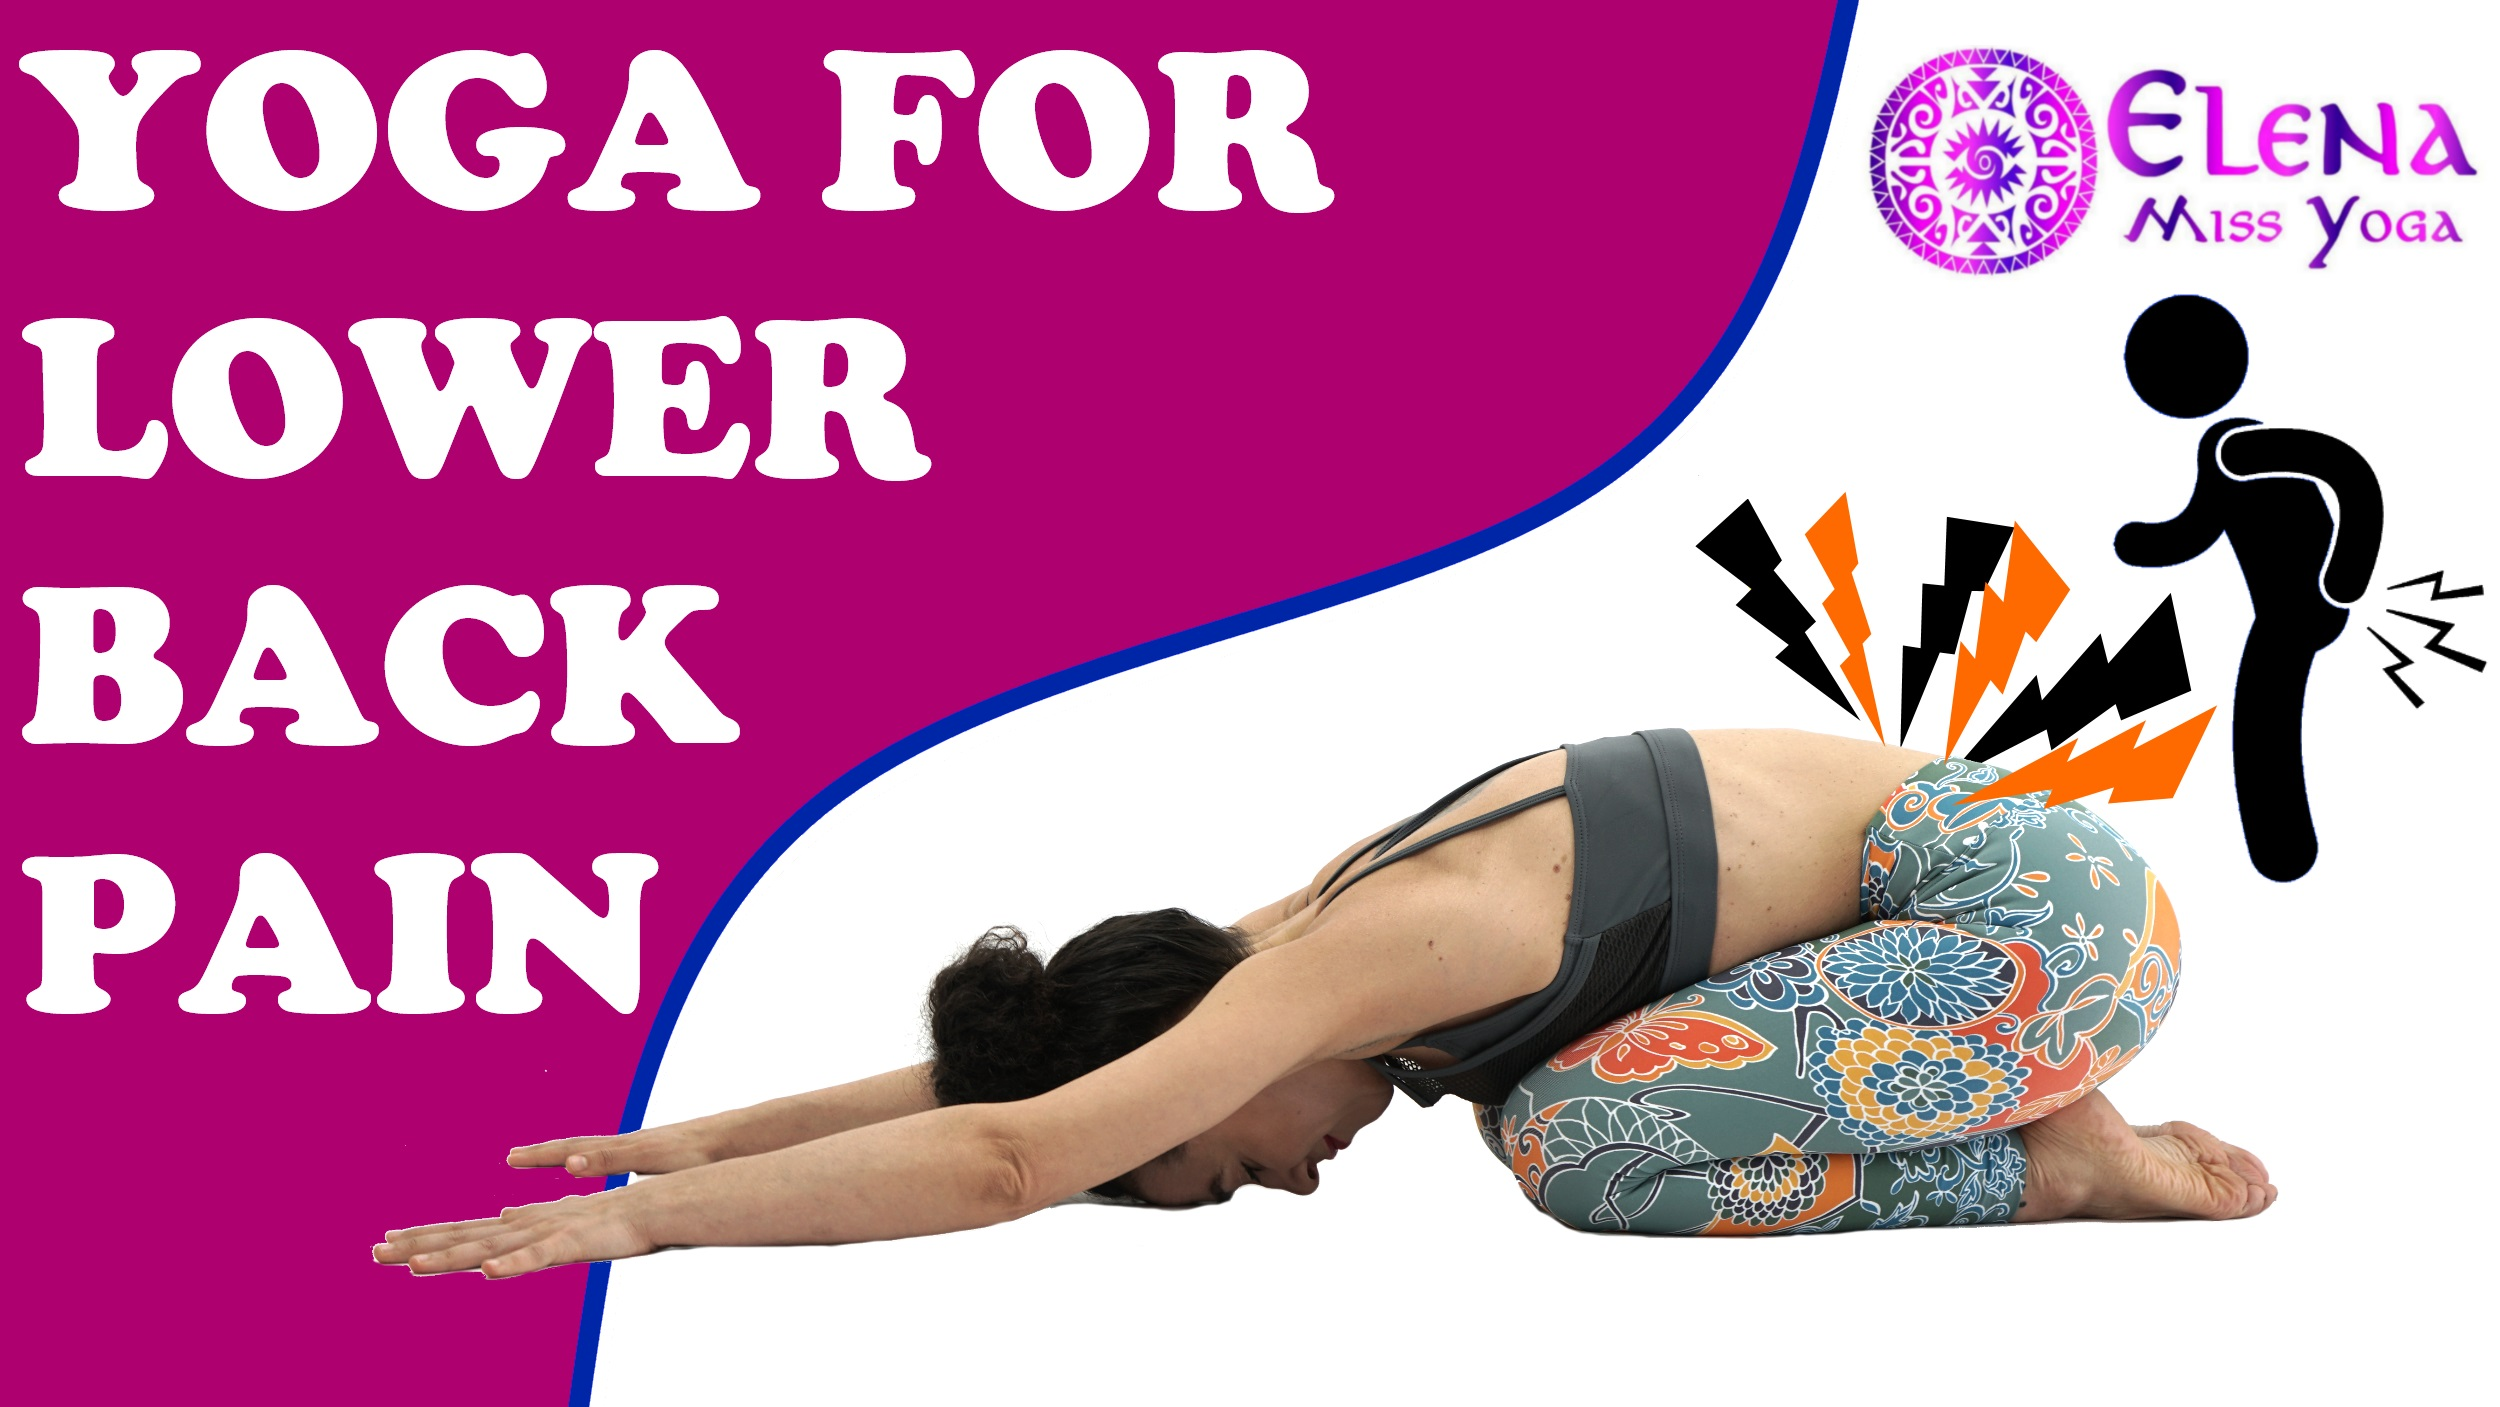 YOGA FOR BACK PAIN - YOGA CLASS